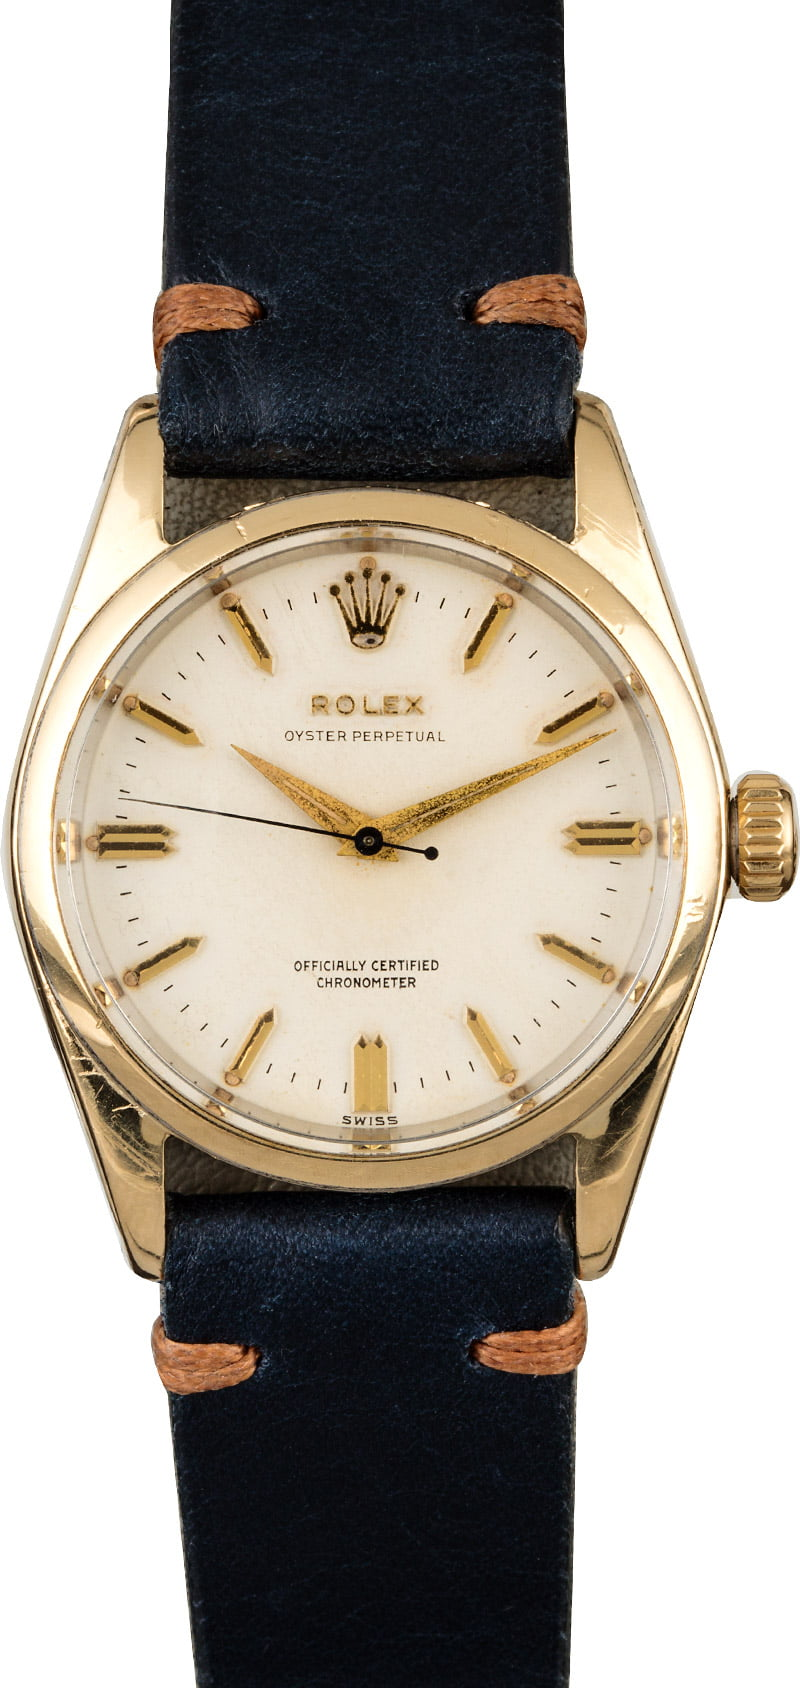 Vintage rolex oyster perpetual 6634 for Vintage rolex oyster